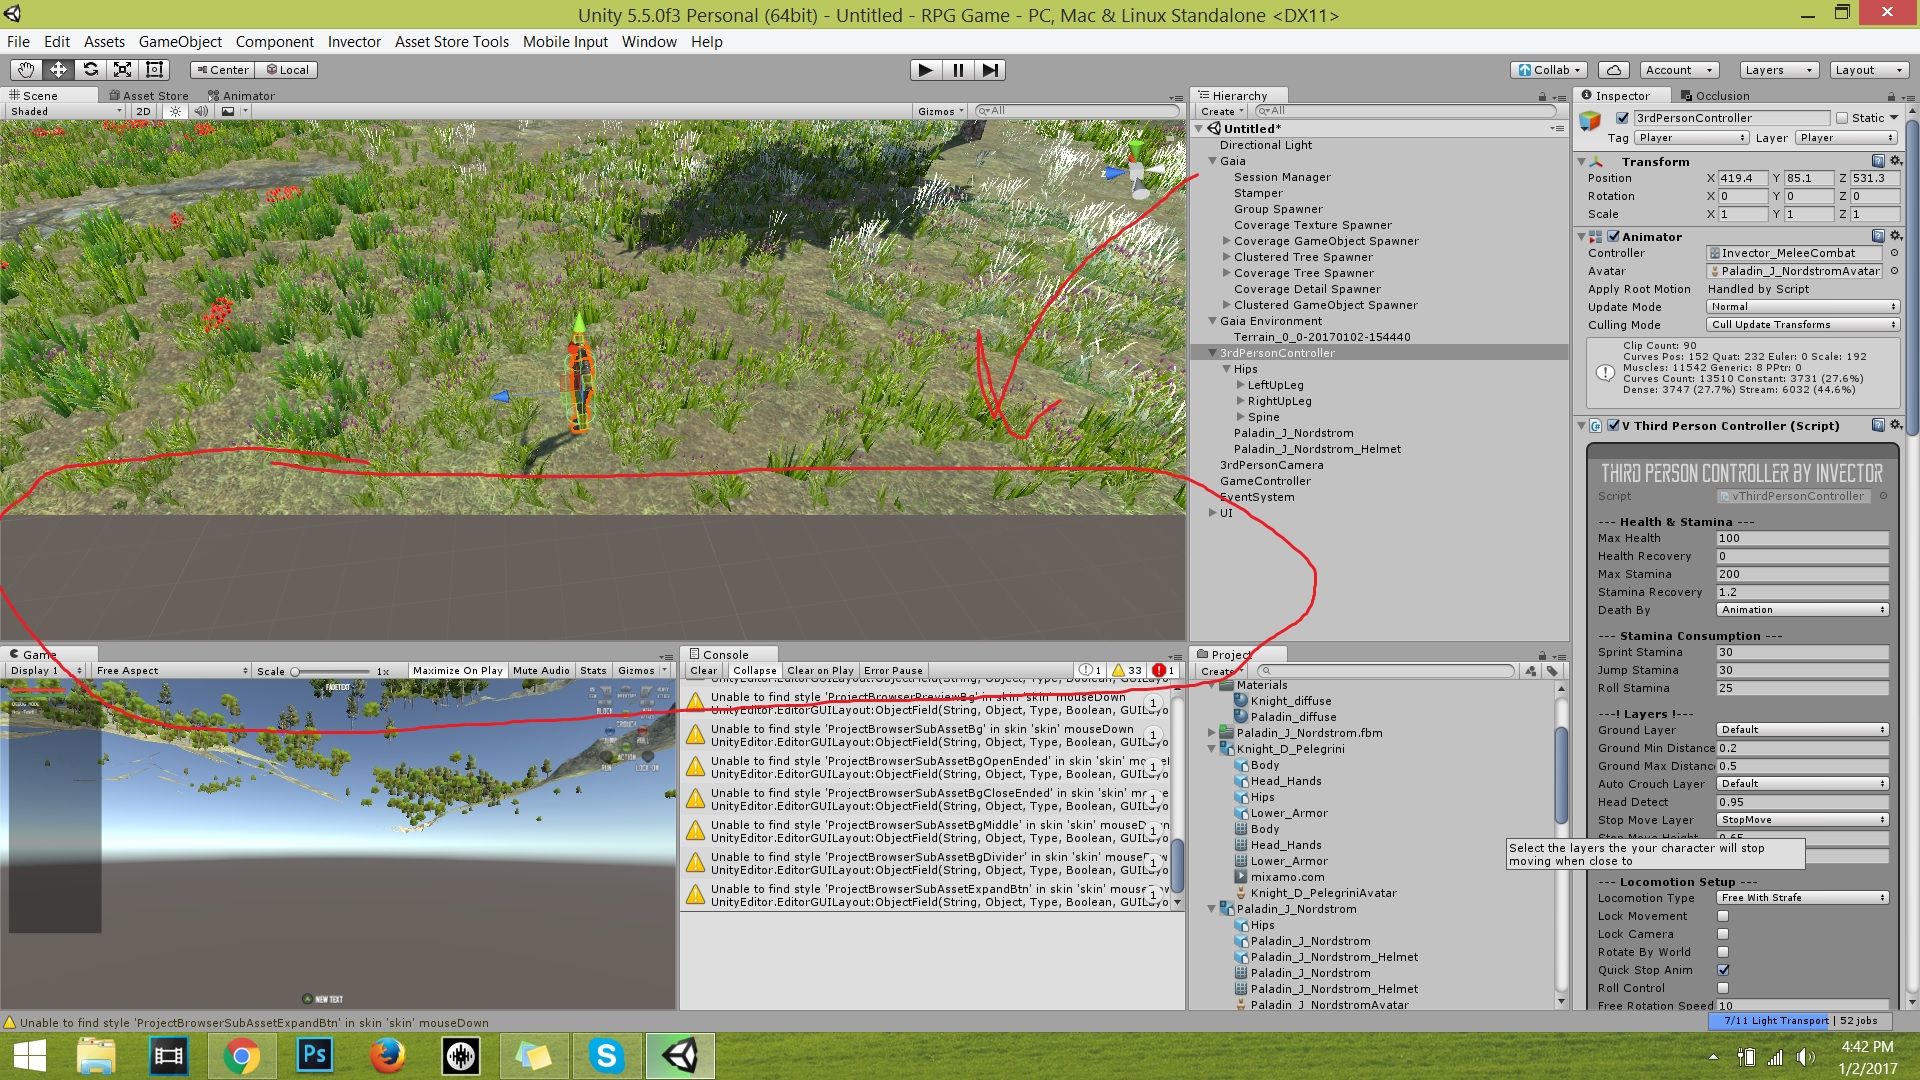 My Editor Camera can't get close to objects/terrain without